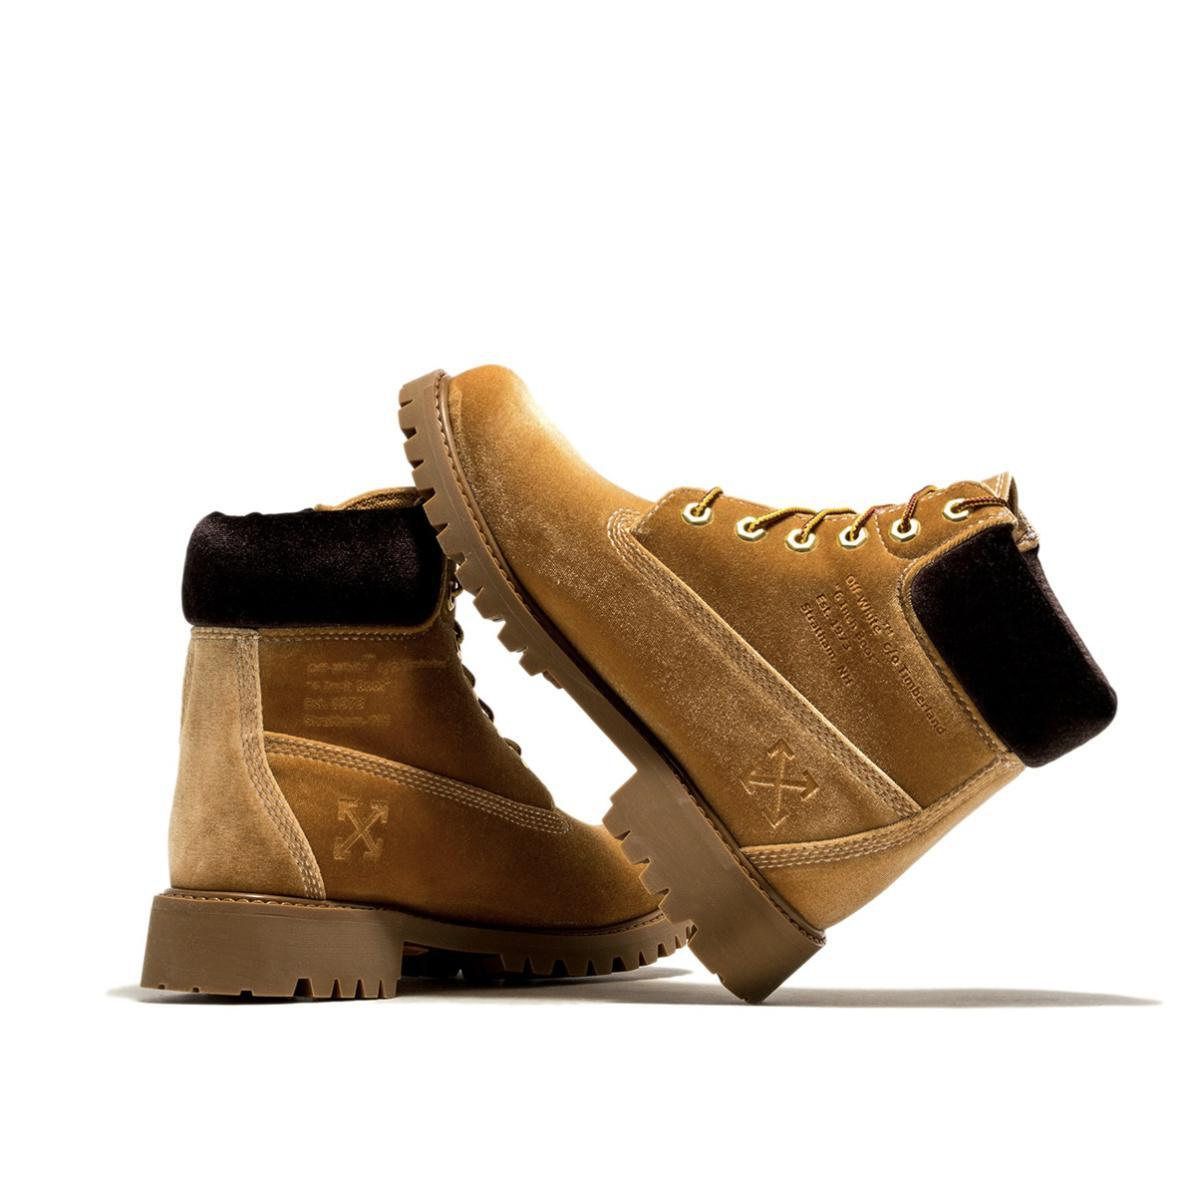 TIMBERLAND Boot x Off-White Boots Camel